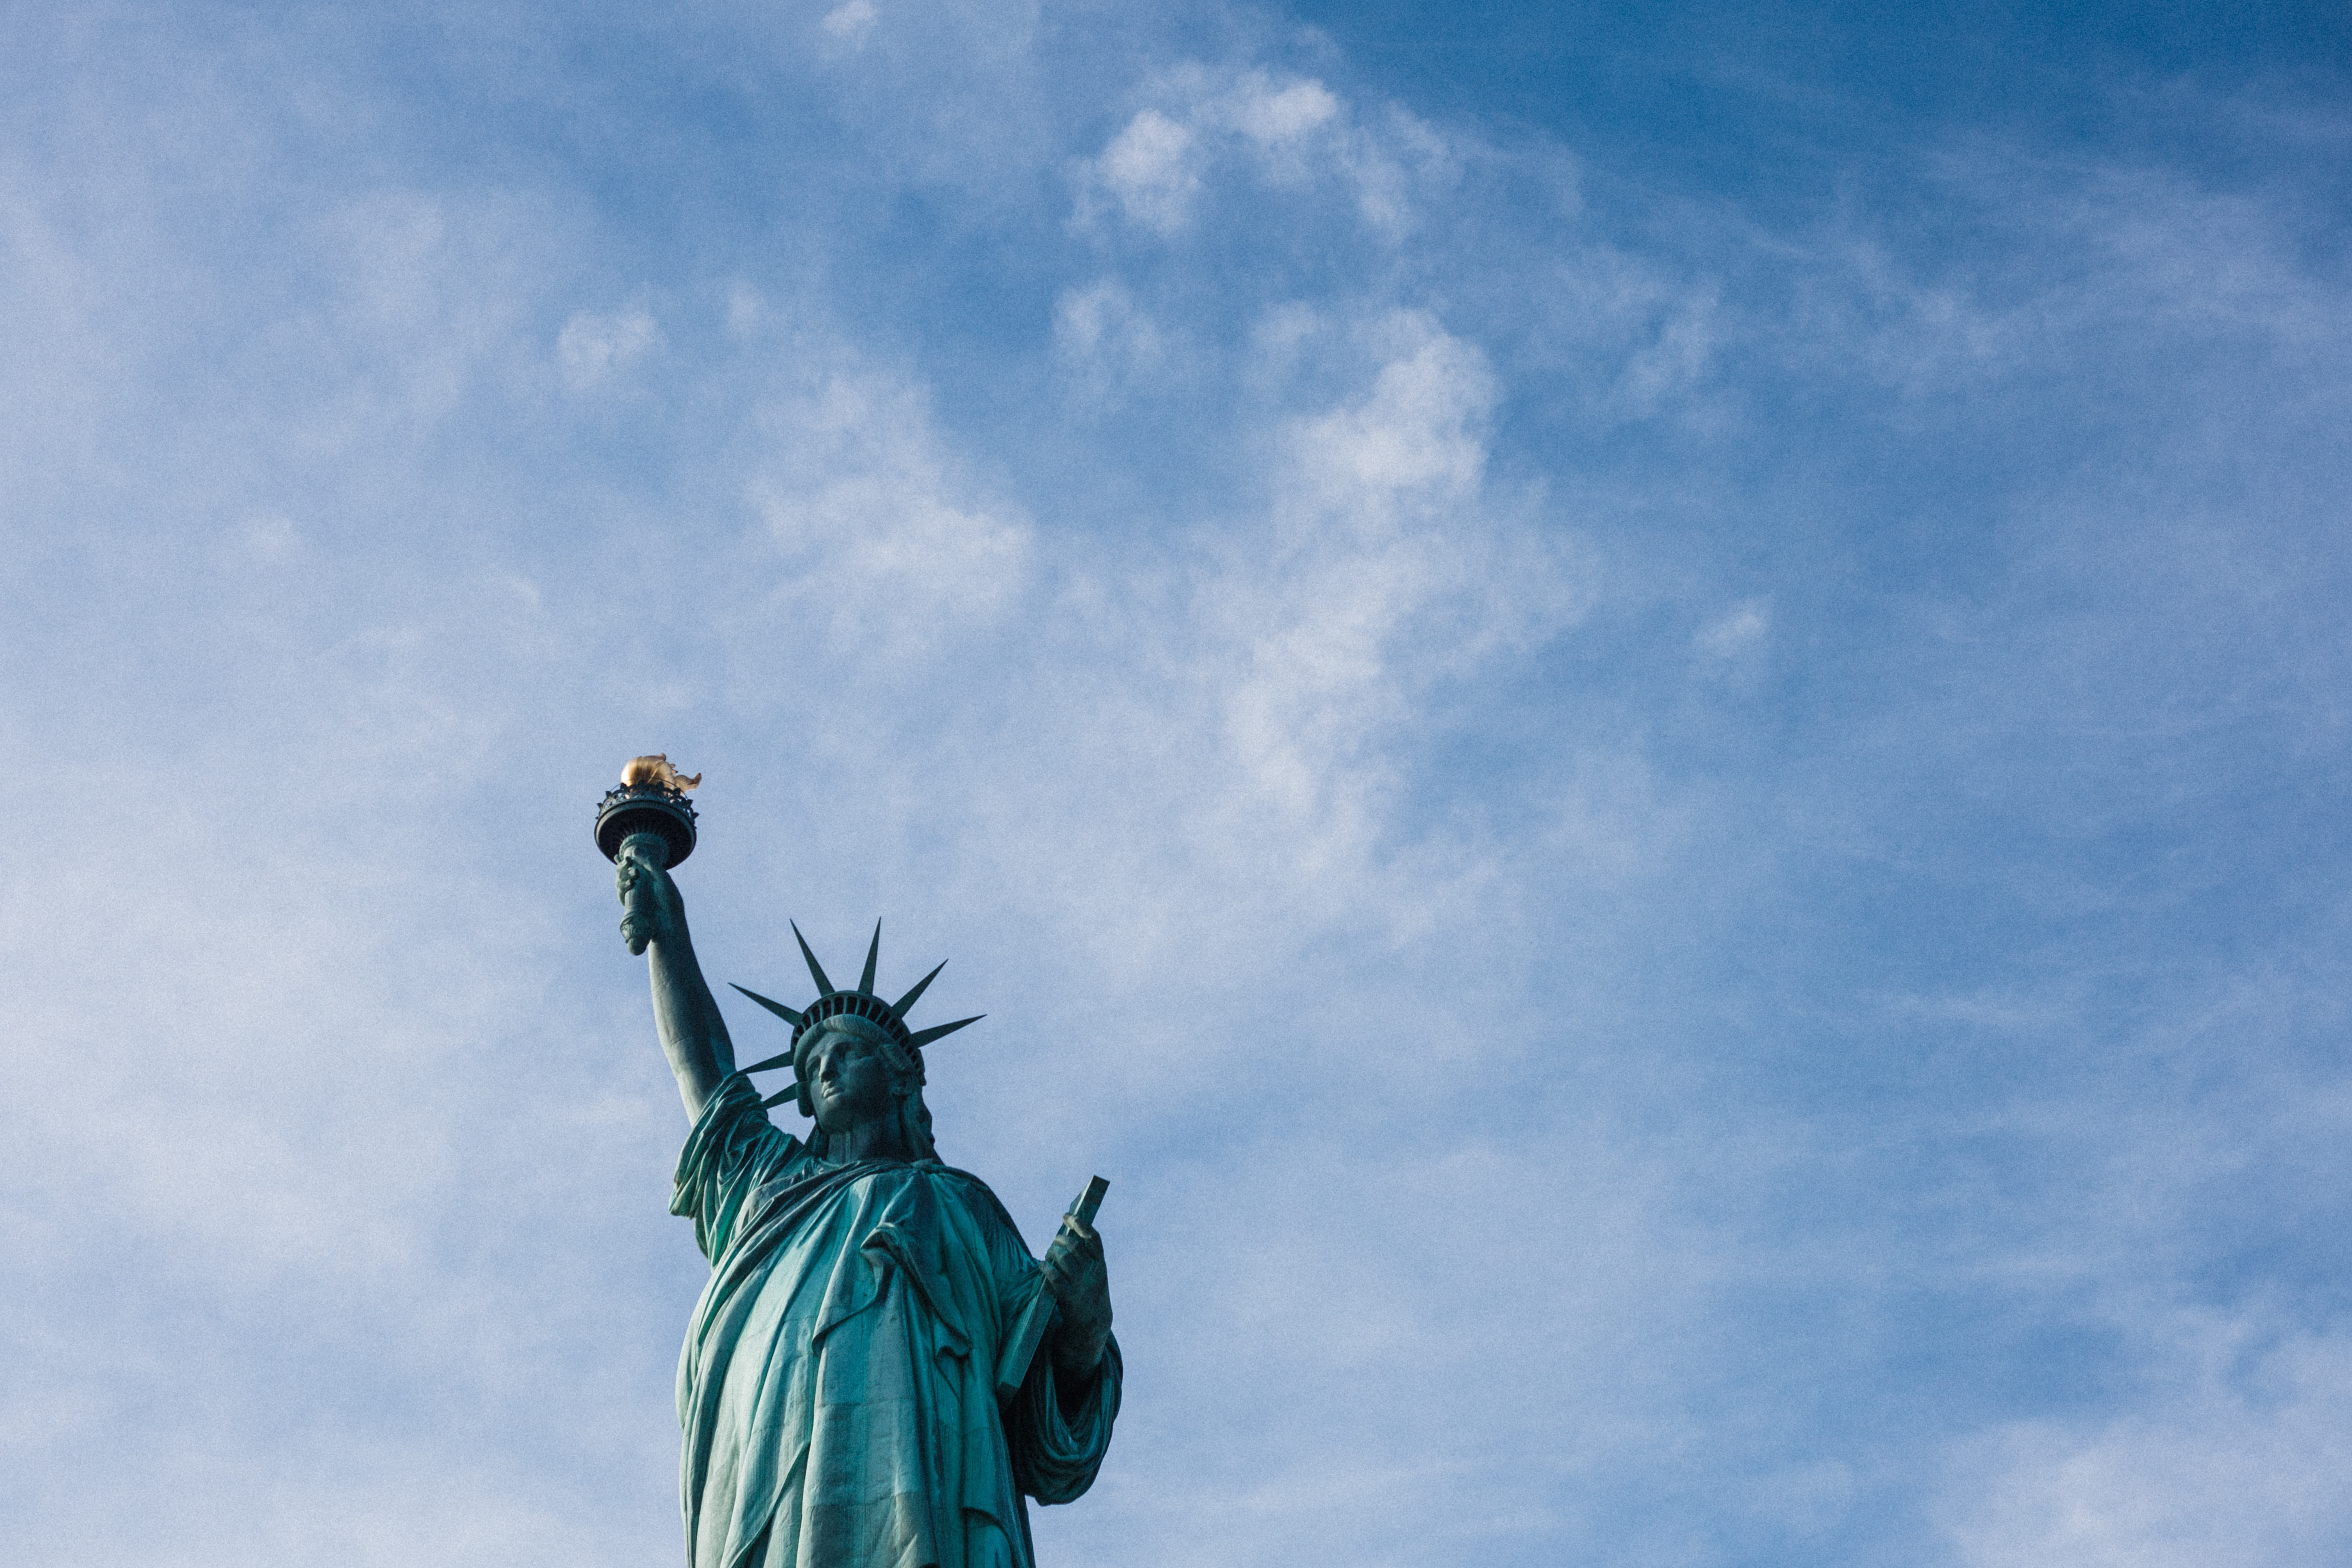 low angle photo of Statue of Liberty under blue and white cloudy daytime sky